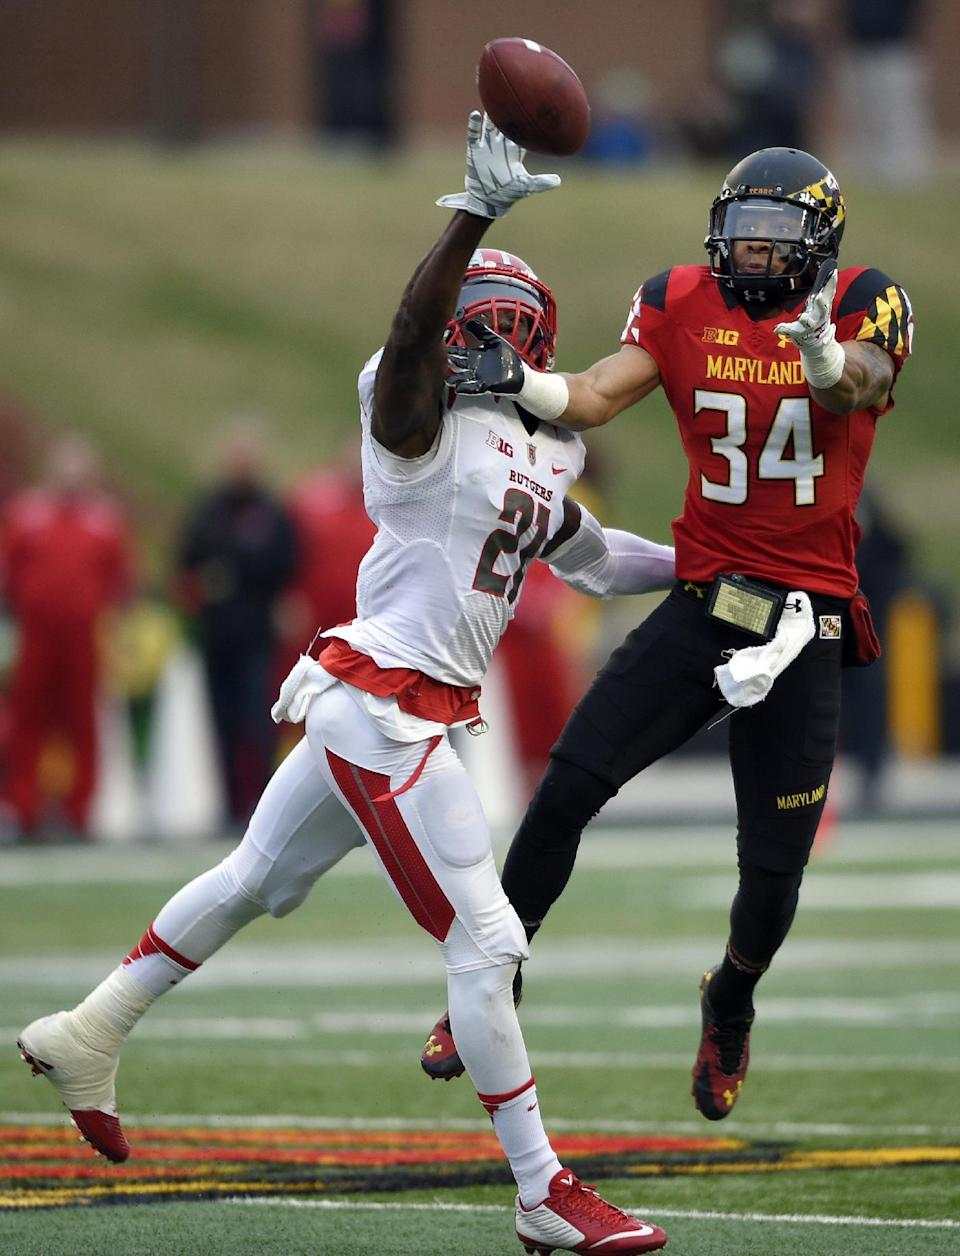 Rutgers defensive back Lorenzo Waters (21) breaks up a pass against Maryland wide receiver Jacquille Veii (34) during the first half of an NCAA college football game, Saturday, Nov. 29, 2014, in College Park, Md. (AP Photo/Nick Wass)